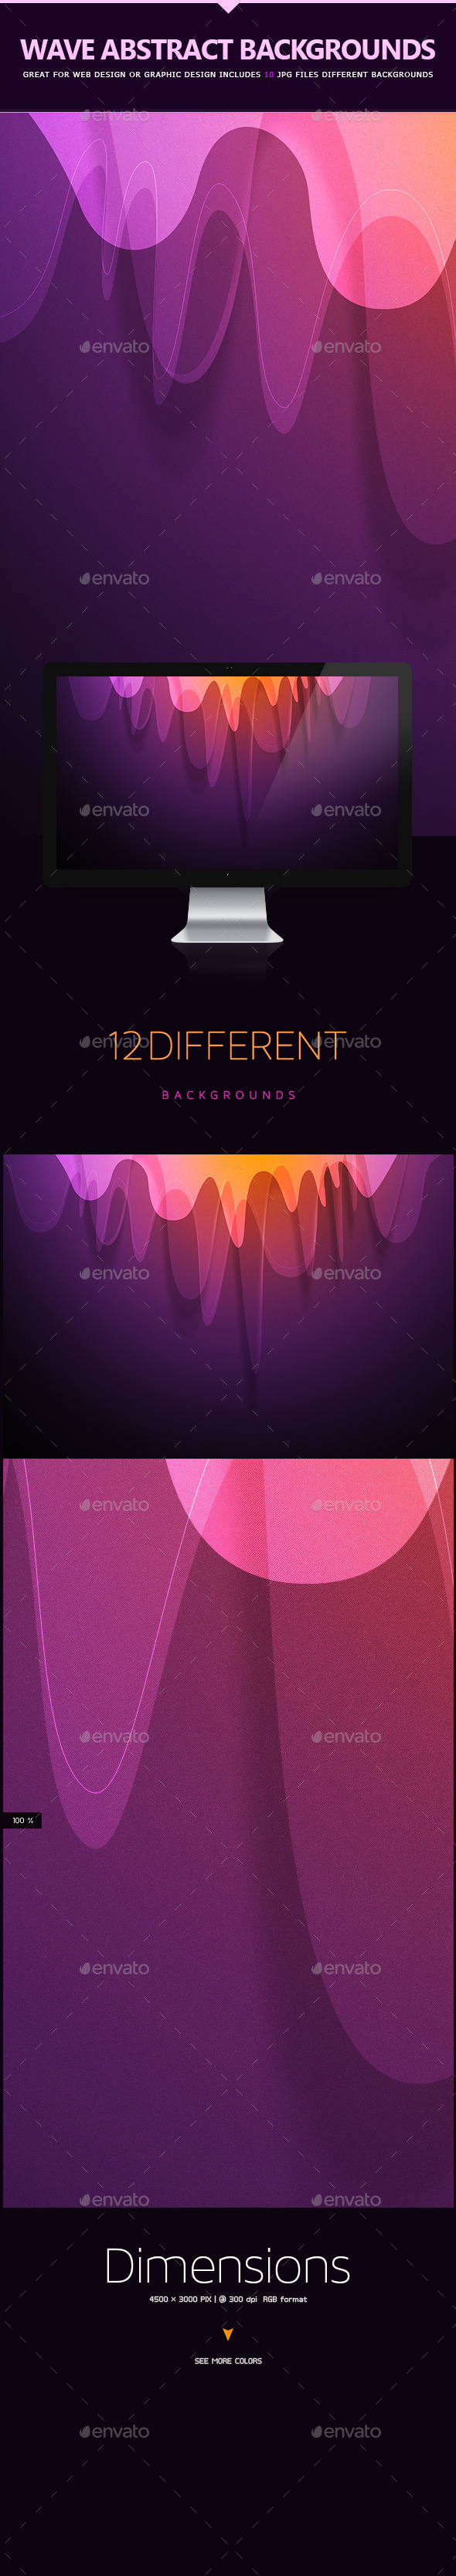 Wave Abstract Backgrounds - Miscellaneous Backgrounds